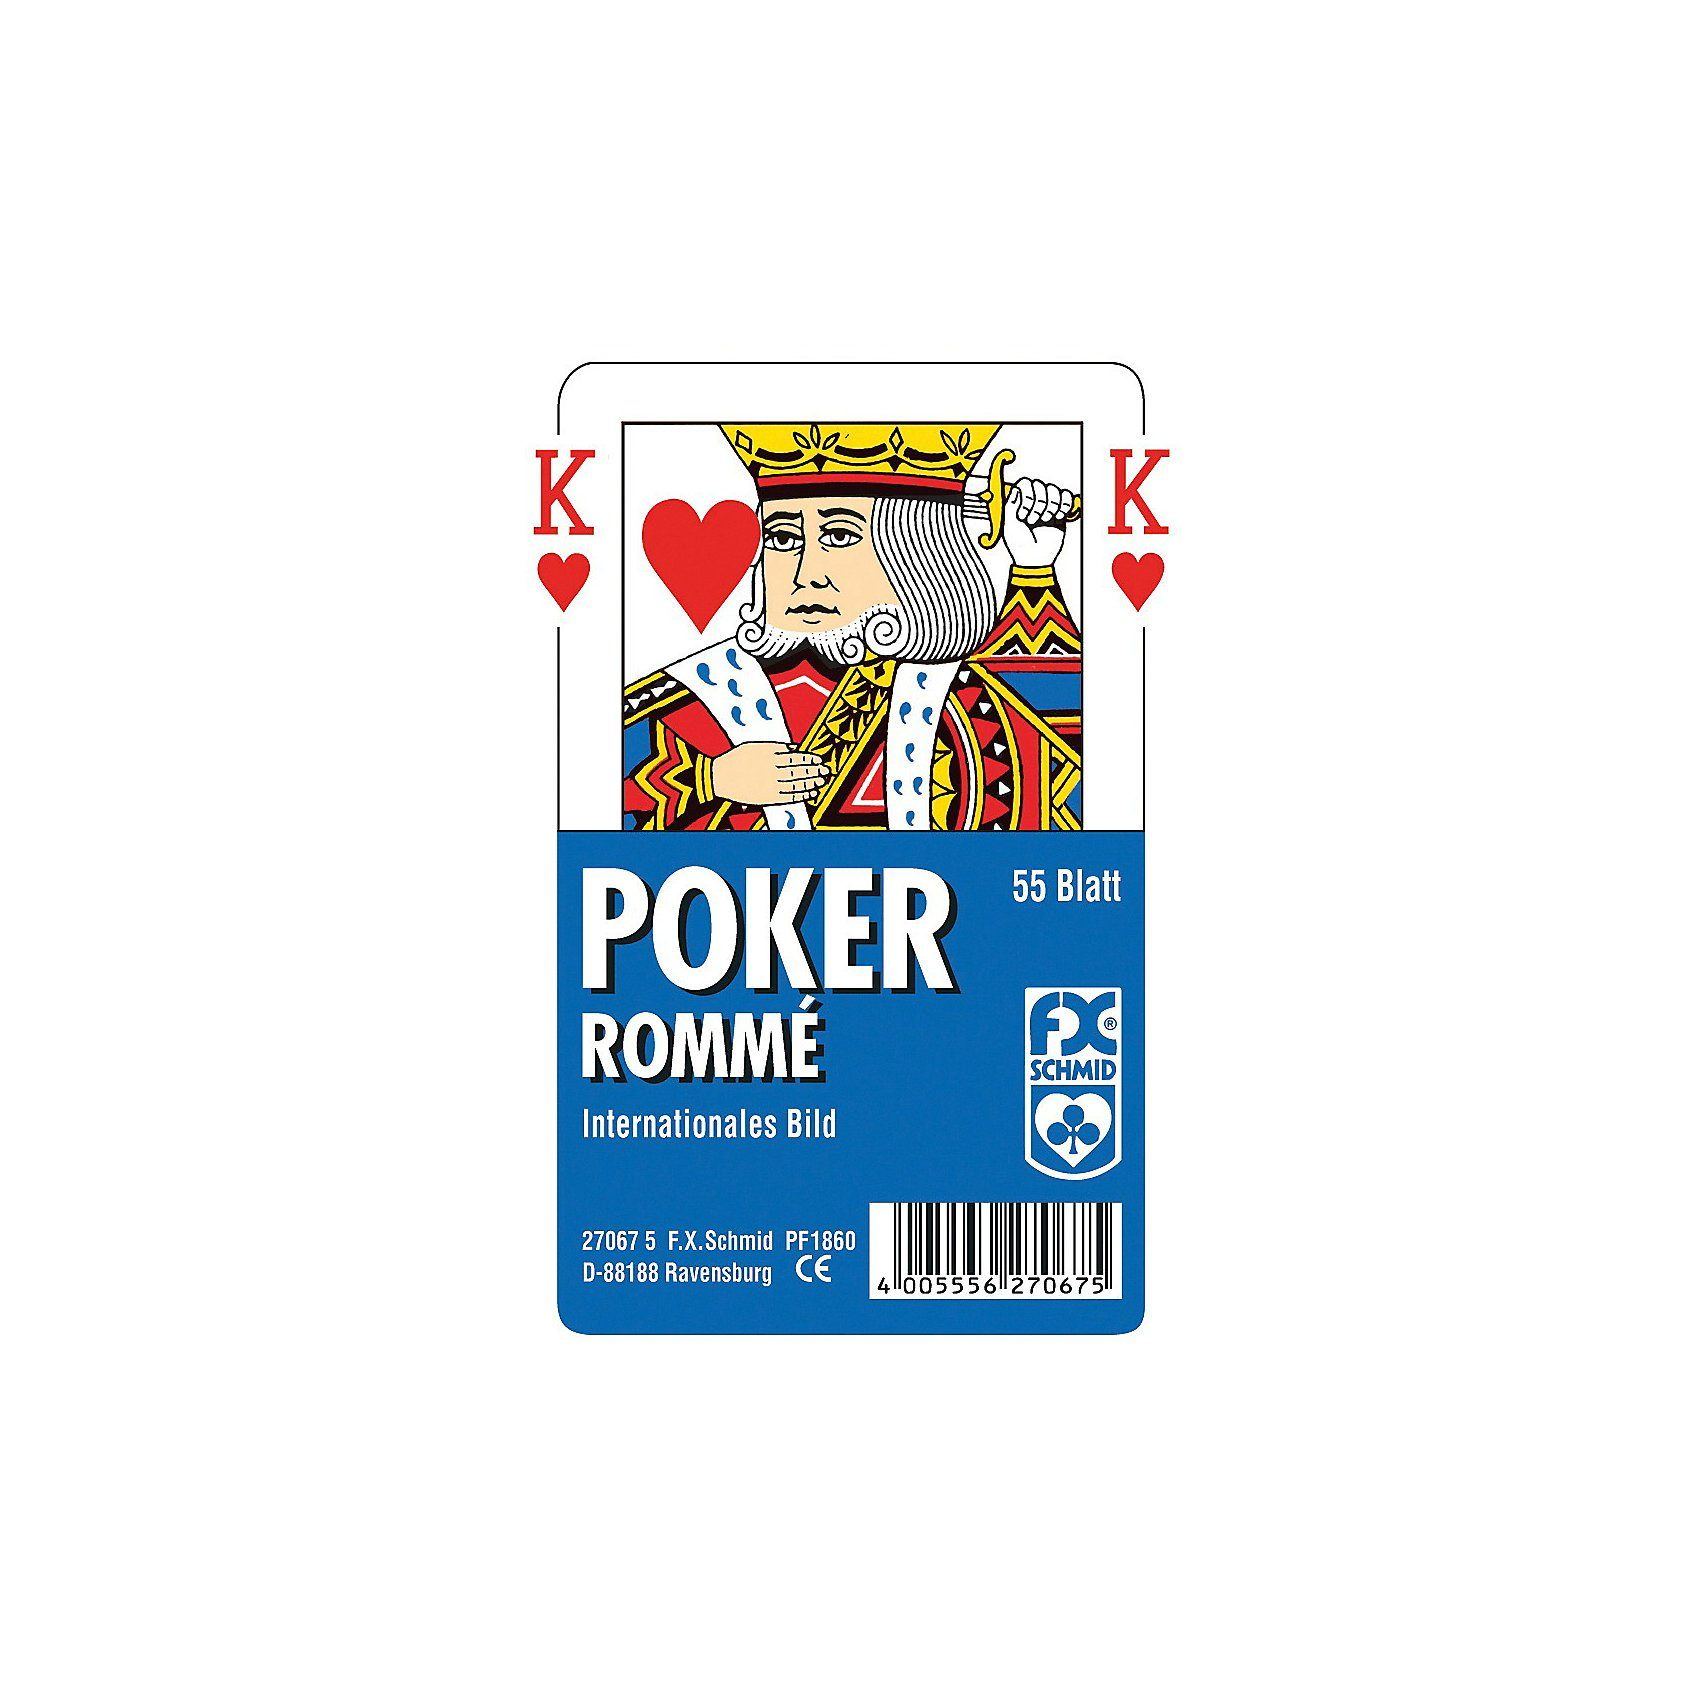 Ravensburger Poker, internationales Bild